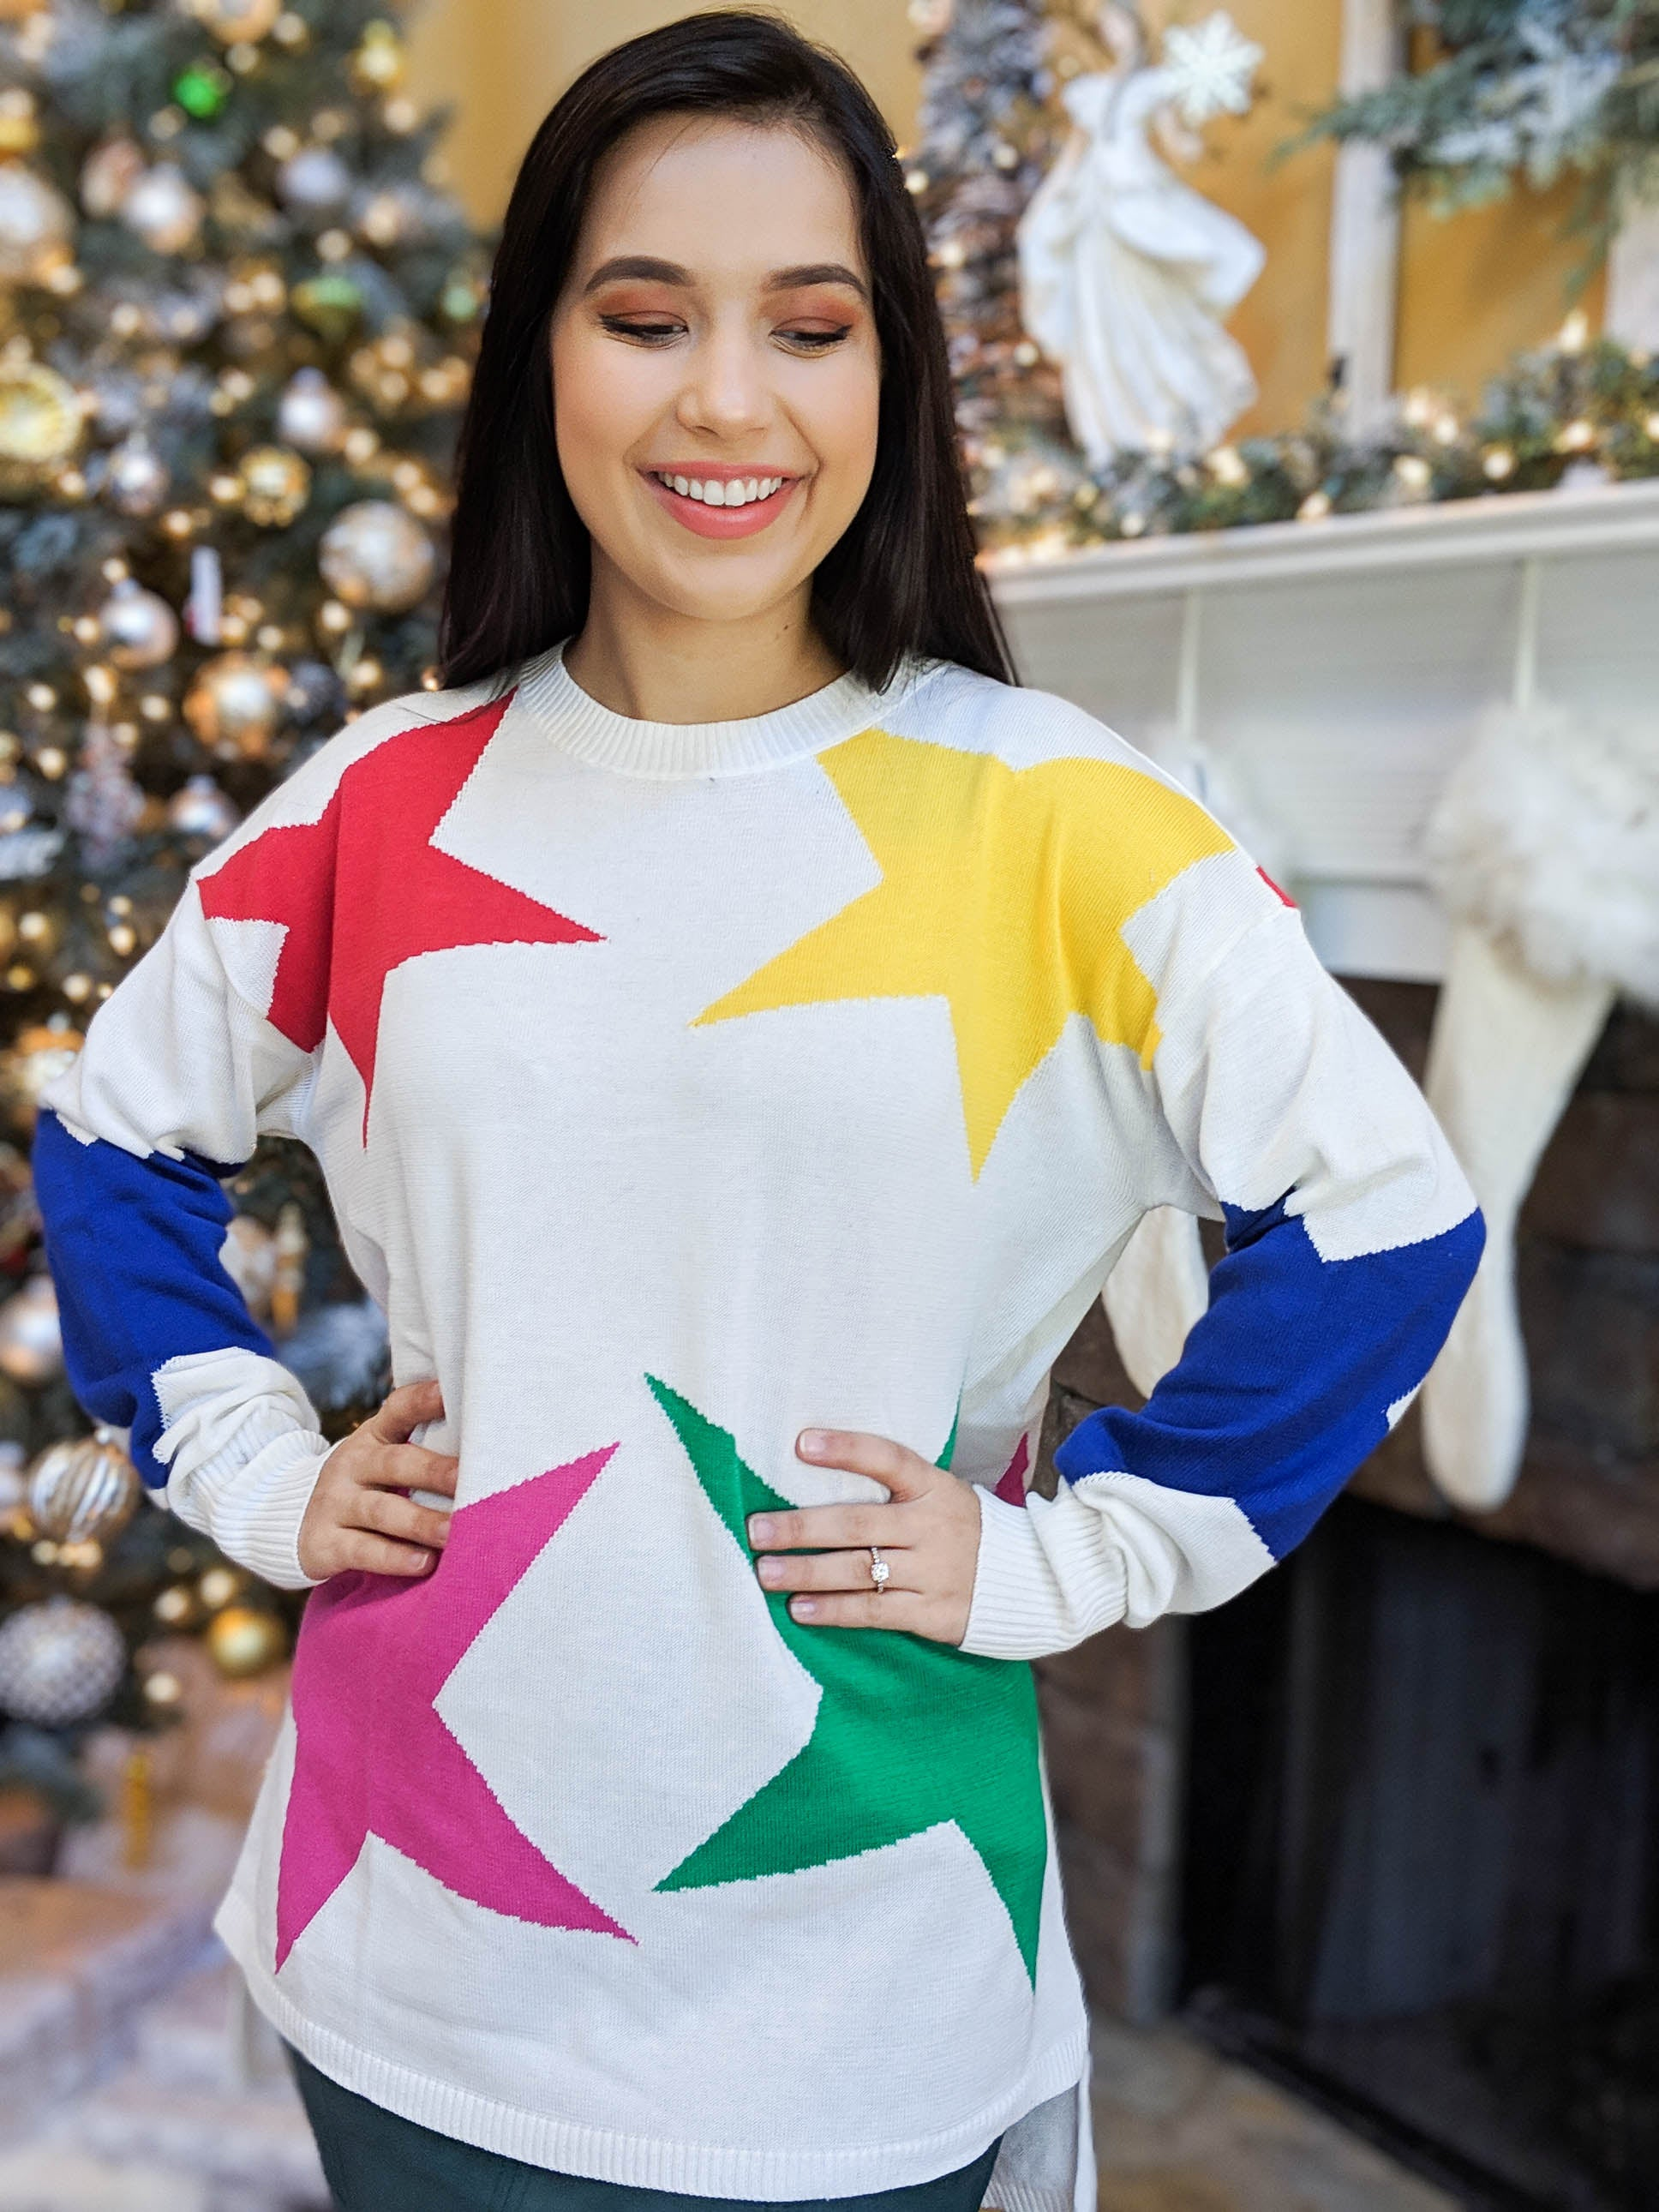 Star Is Born Sweater - The Flawless Babe Boutique